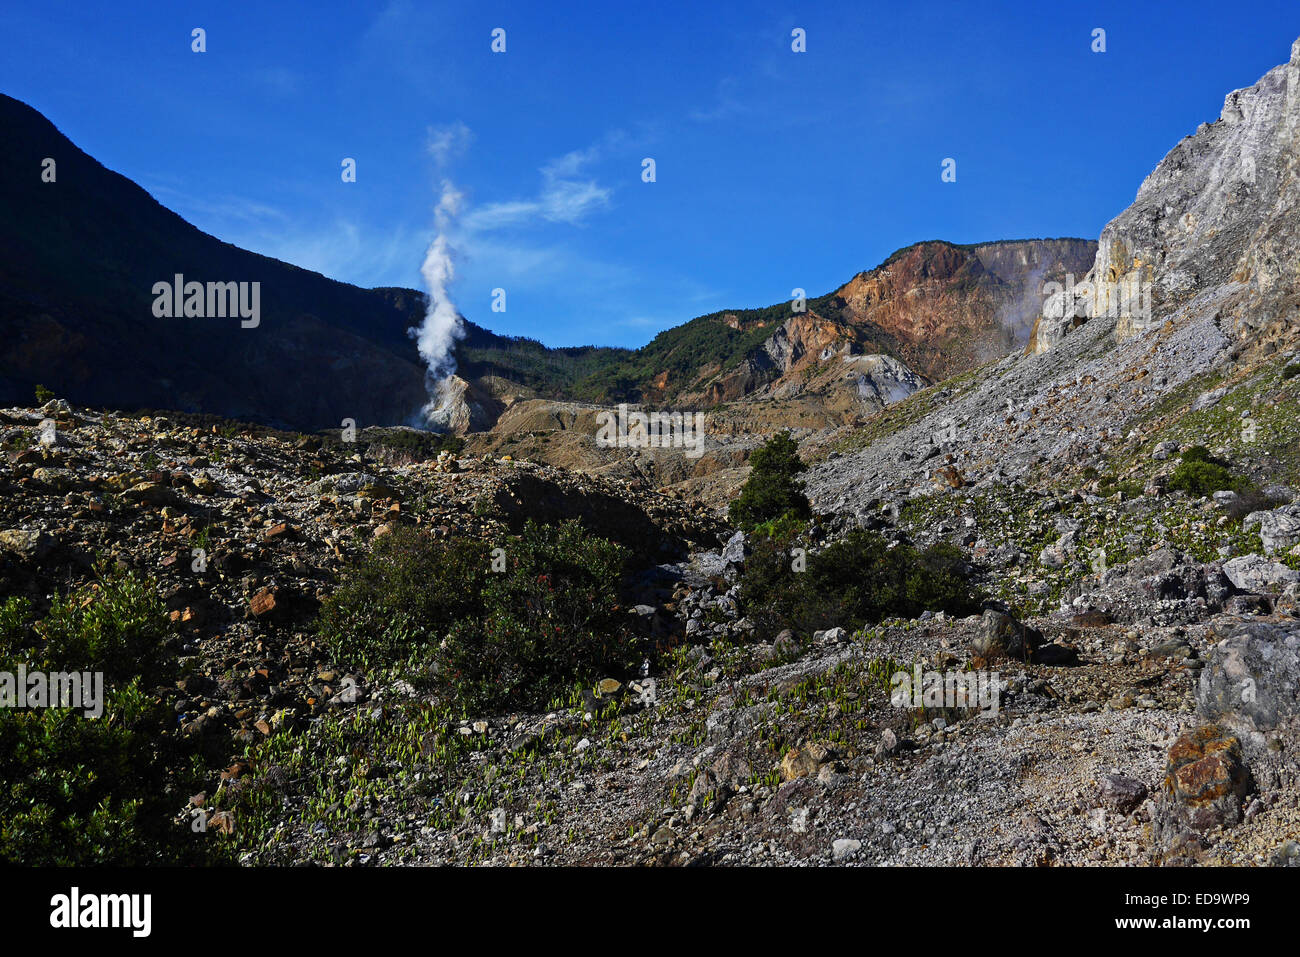 Mount Papandayan's crater. - Stock Image